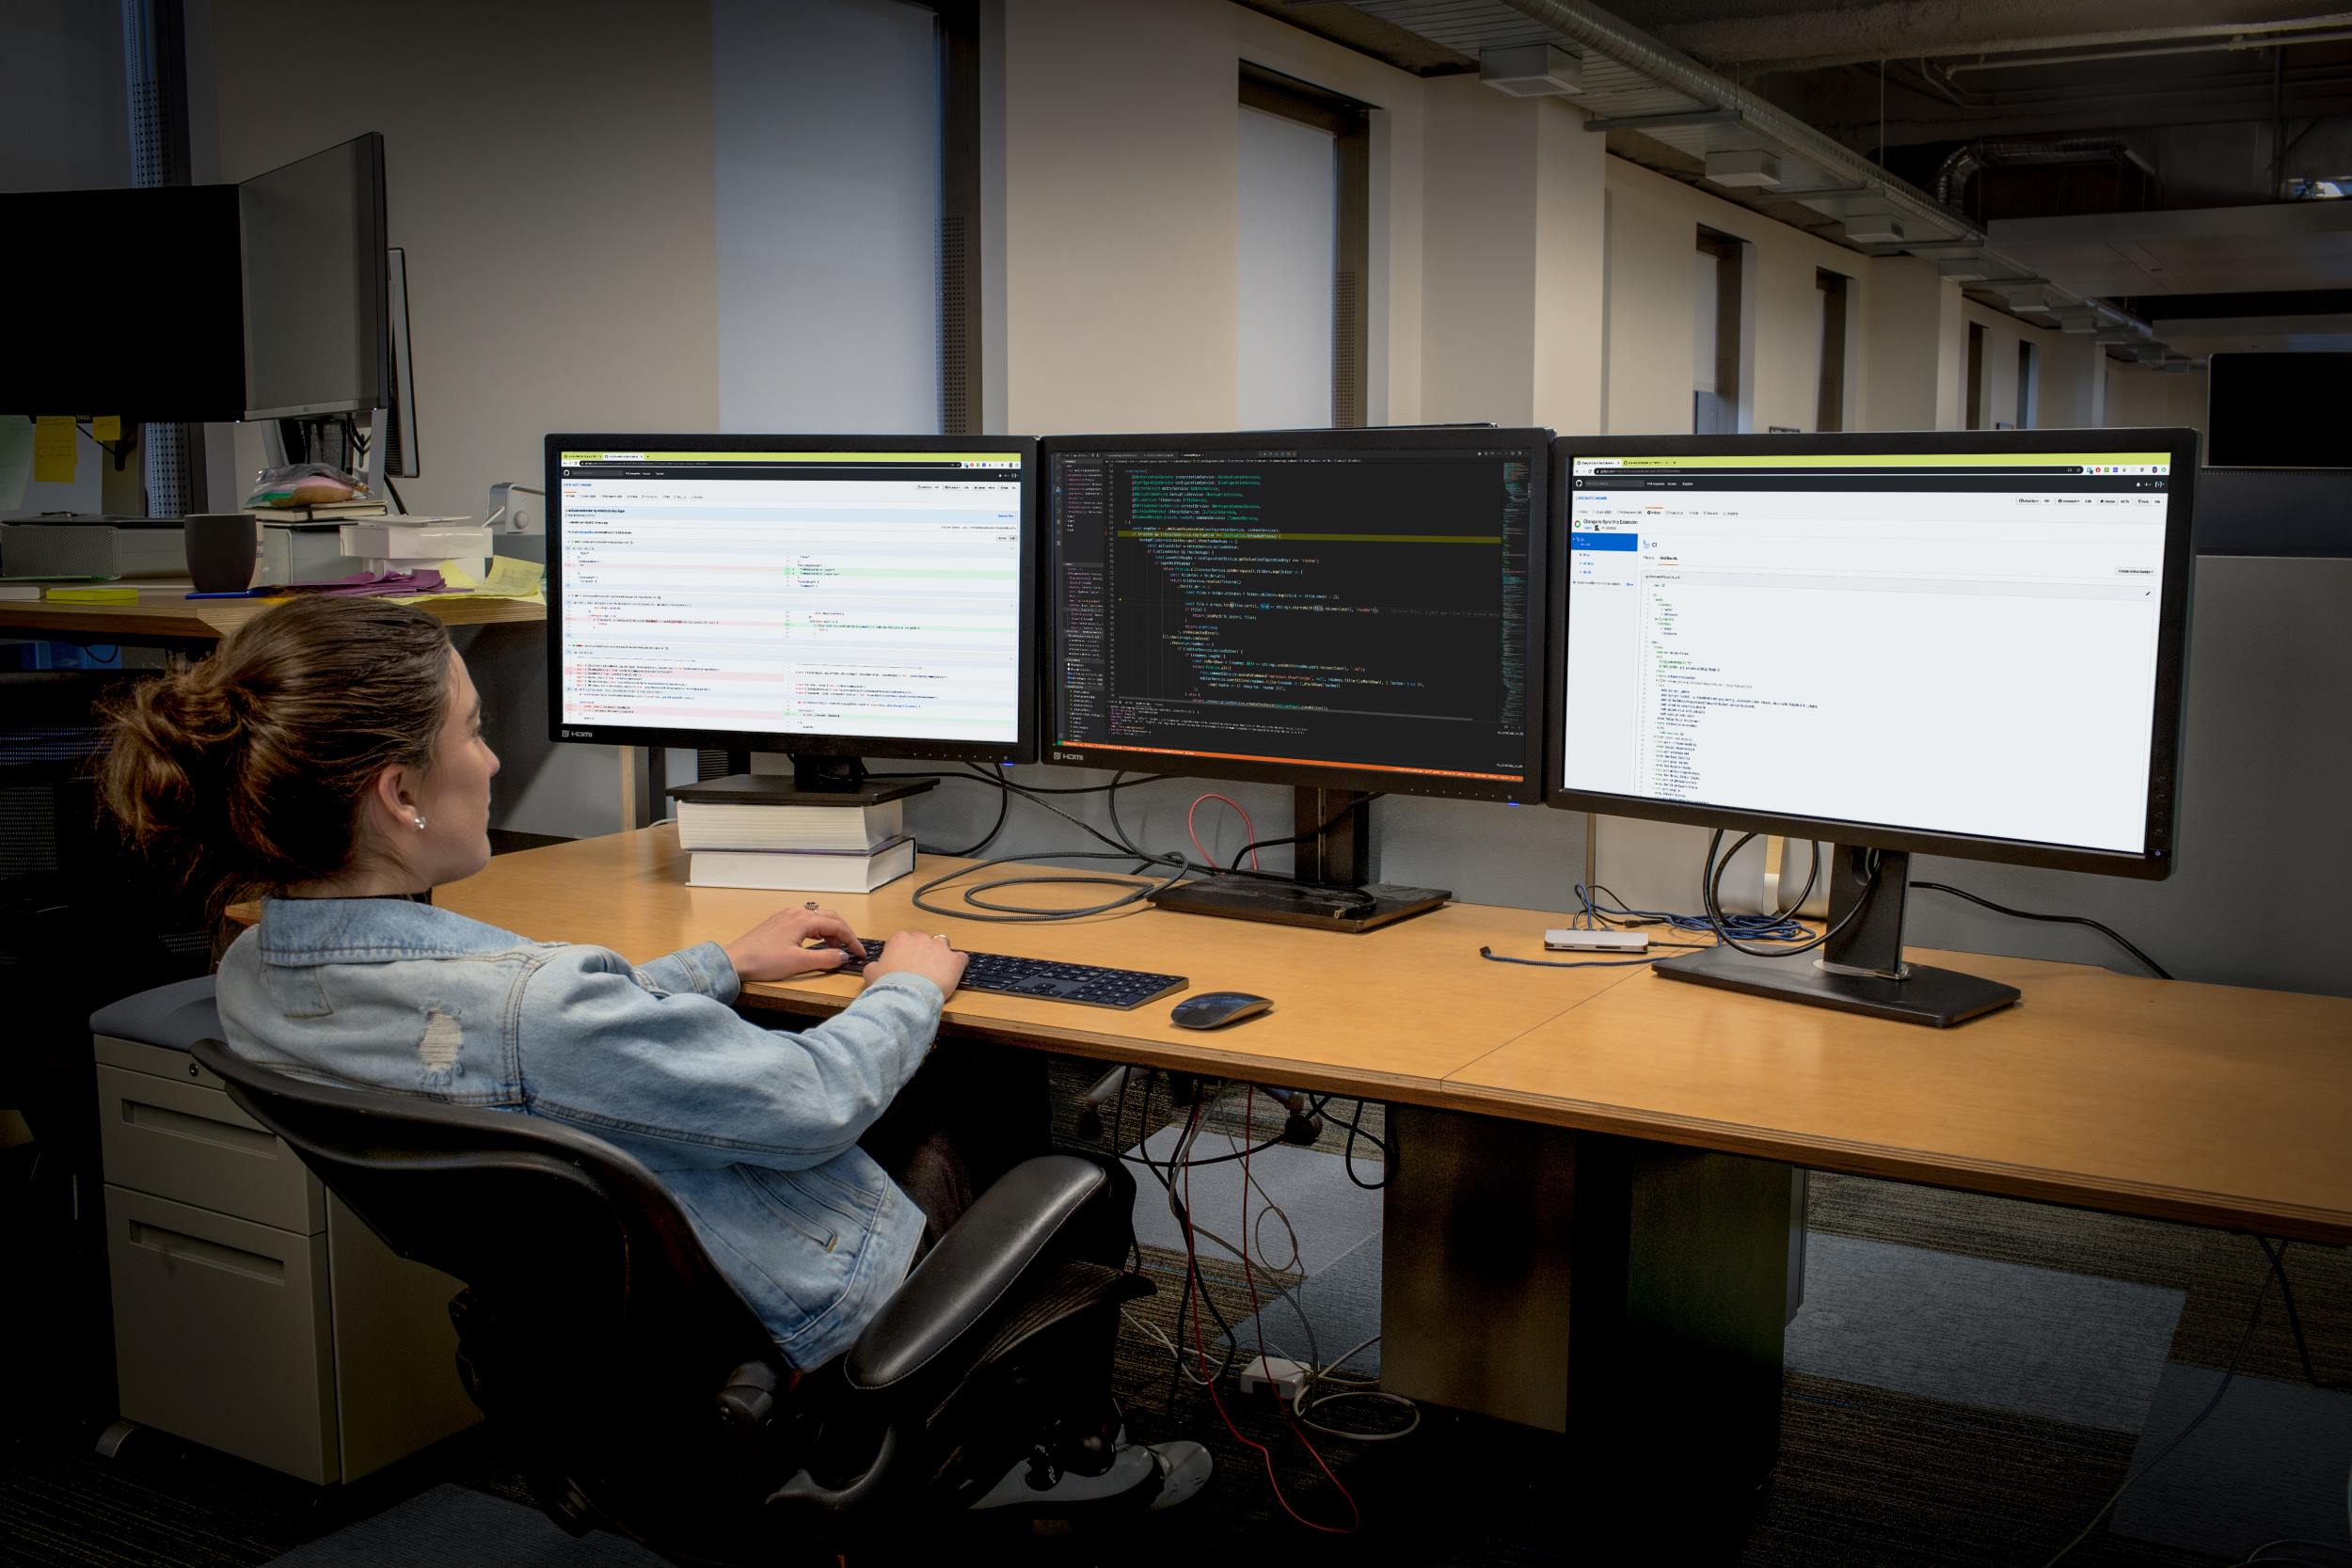 A man on his headset, having a call on Microsoft Teams and working on 2 screens